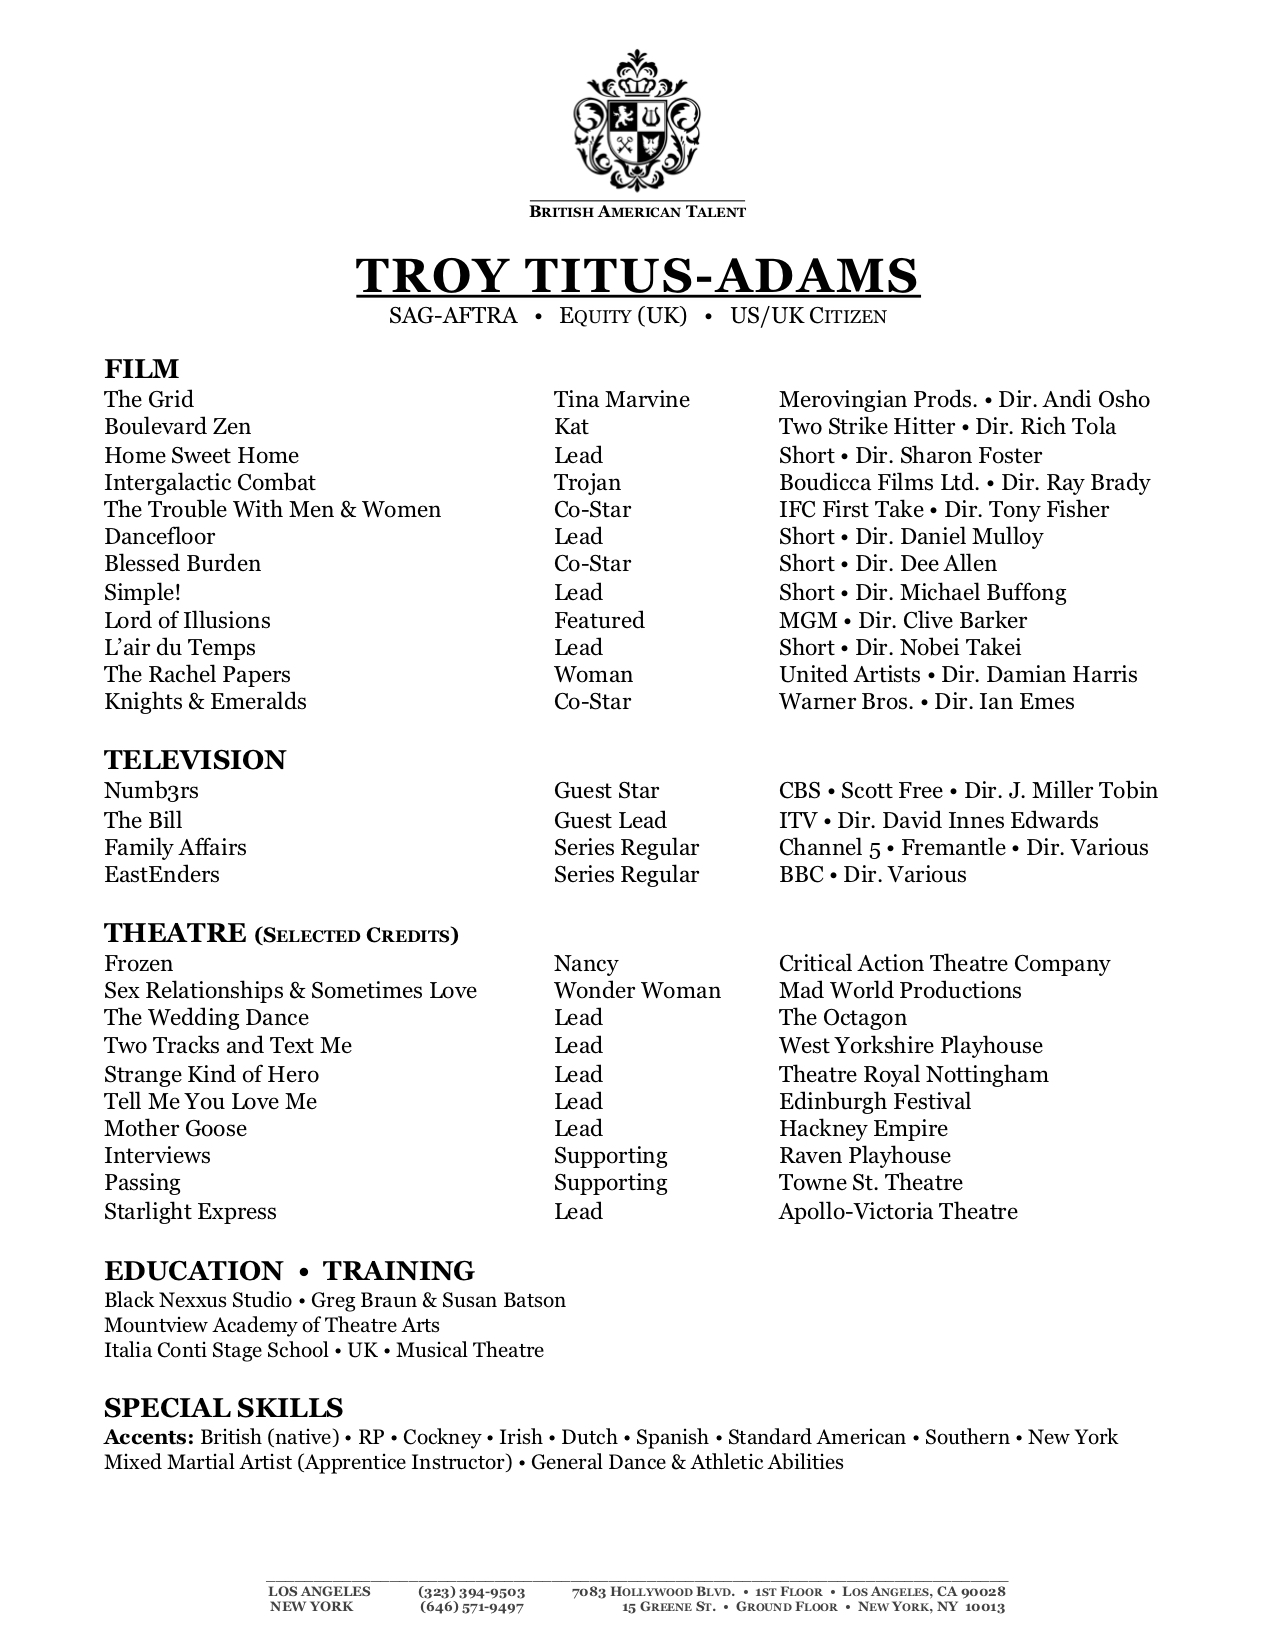 Troy Titus-Adams Resume.jpg